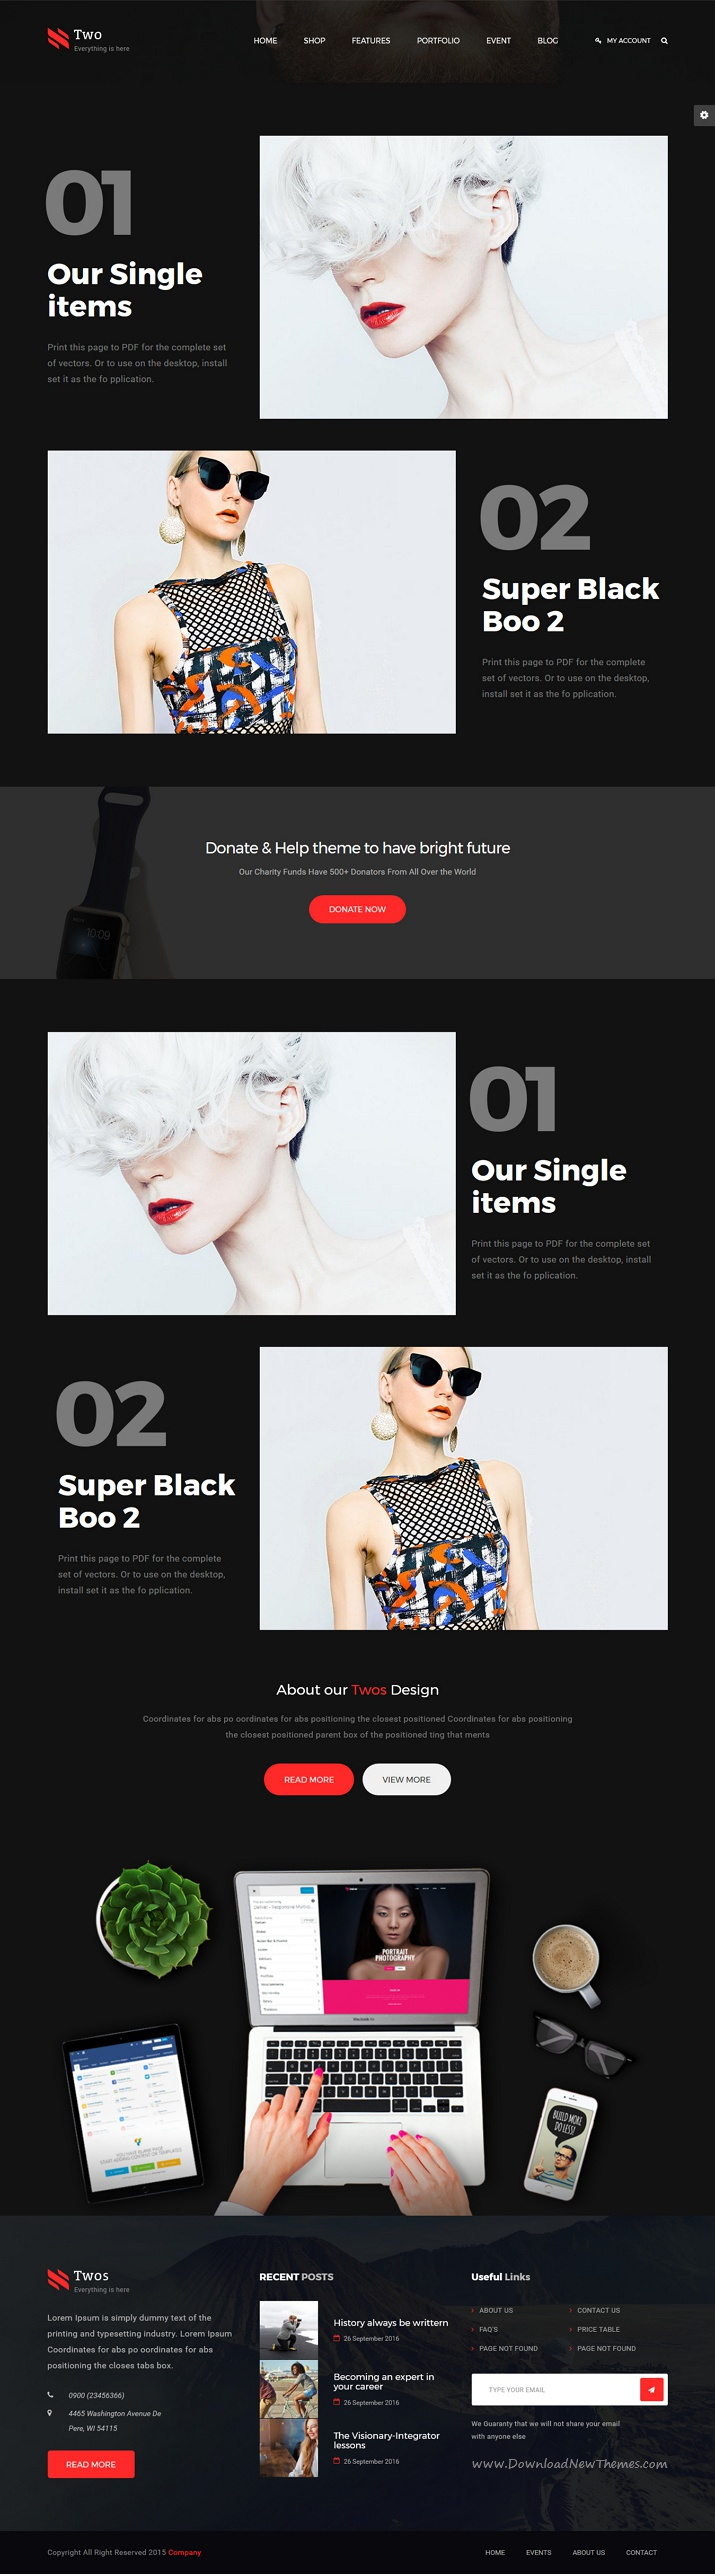 NumberTwo is an creative multipurpose #Drupal 8 Theme for #cmstheme stunning #website with 7 unique homepage layouts download now➩ https://themeforest.net/item/numbertwo-responsive-creative-multipurpose-drupal-8-theme/19450578?ref=Datasata